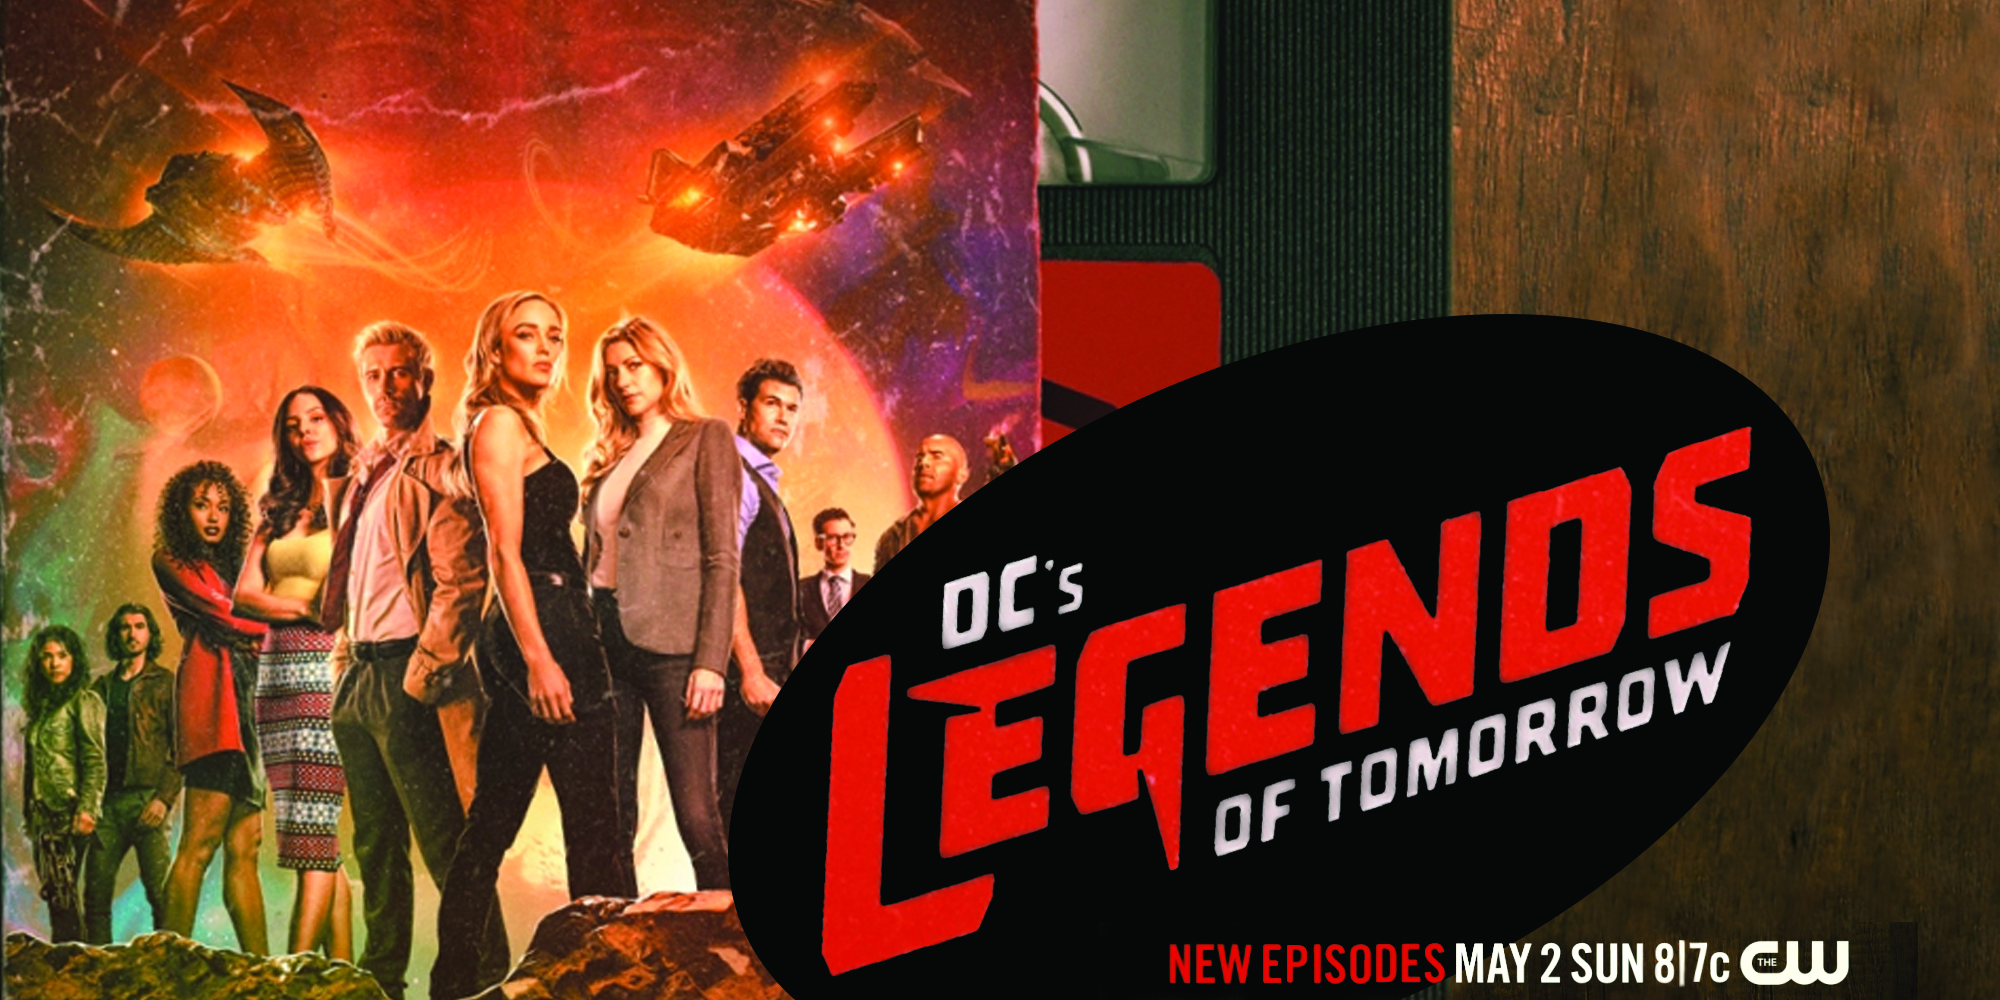 Cutdown of the 90s Style Poster for DCs Legends of Tomorrow Season 6